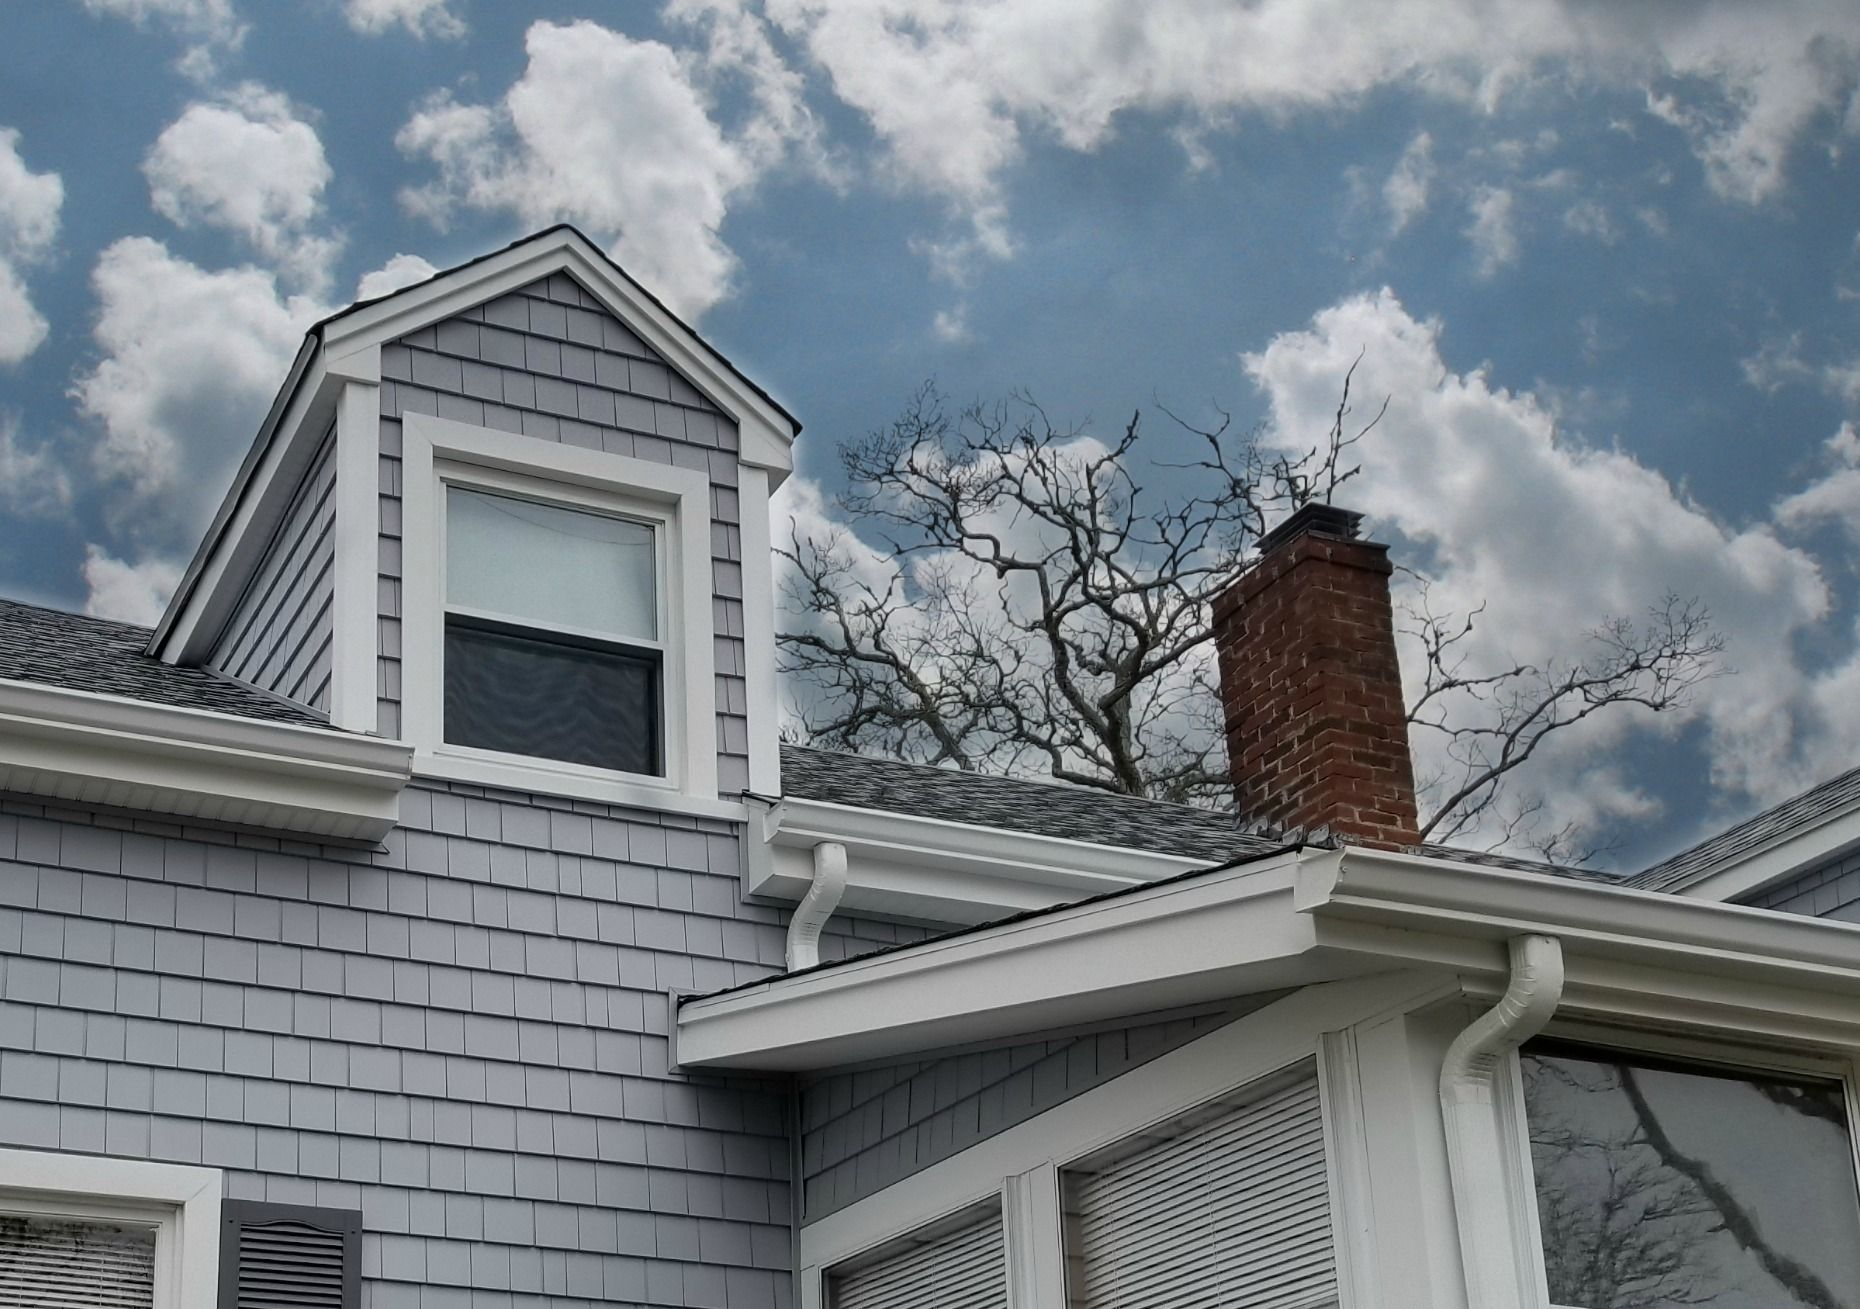 Pacific Blue Vinyl Siding By Certainteed Exterior Paint Colors For House Blue Vinyl Siding House Exterior